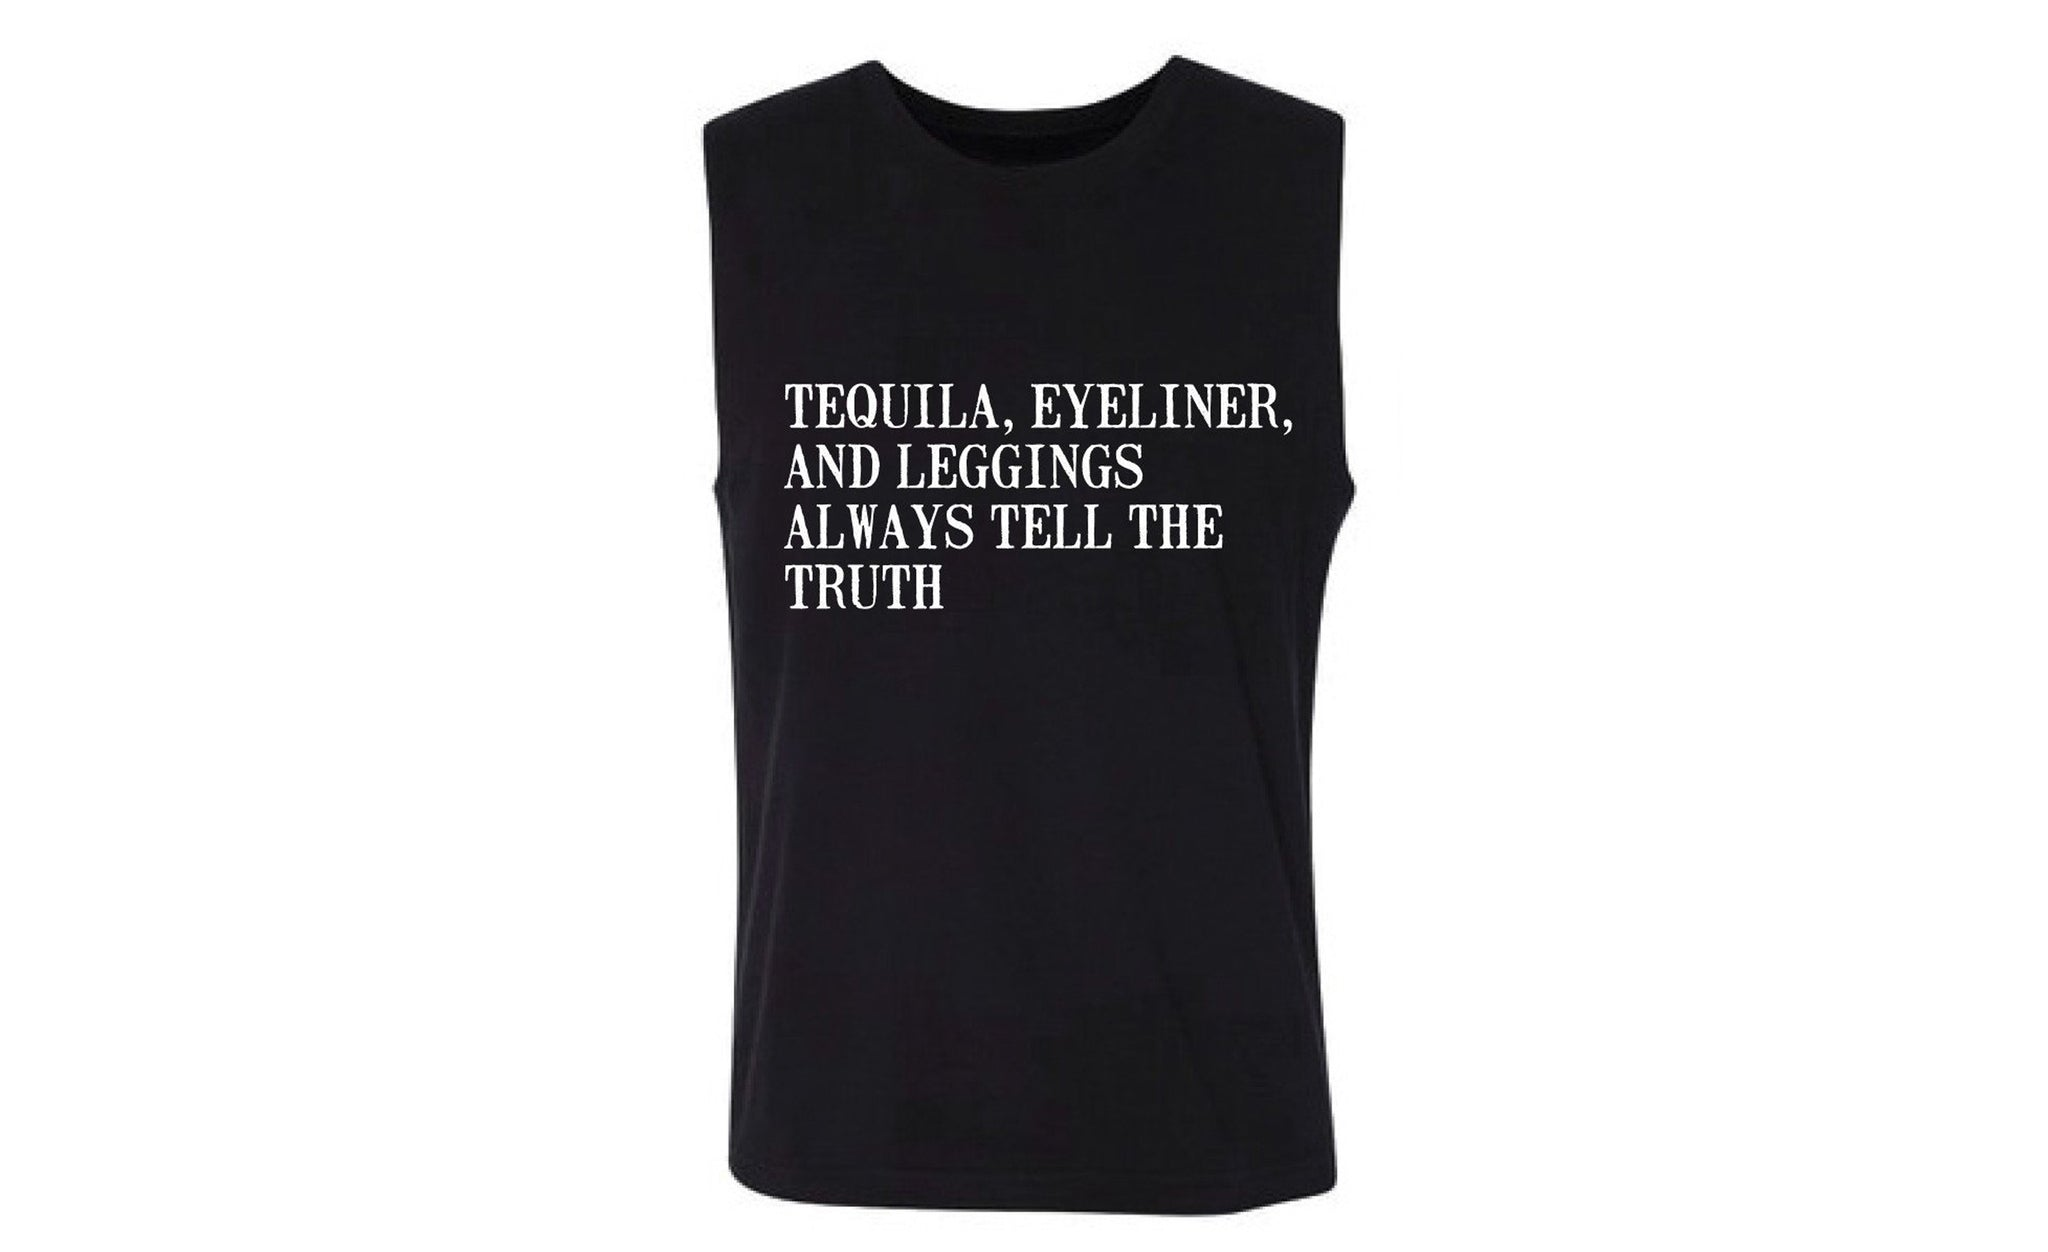 Tequila, Eyeliner, and Leggings always tell the truth Women's Muscle Tank